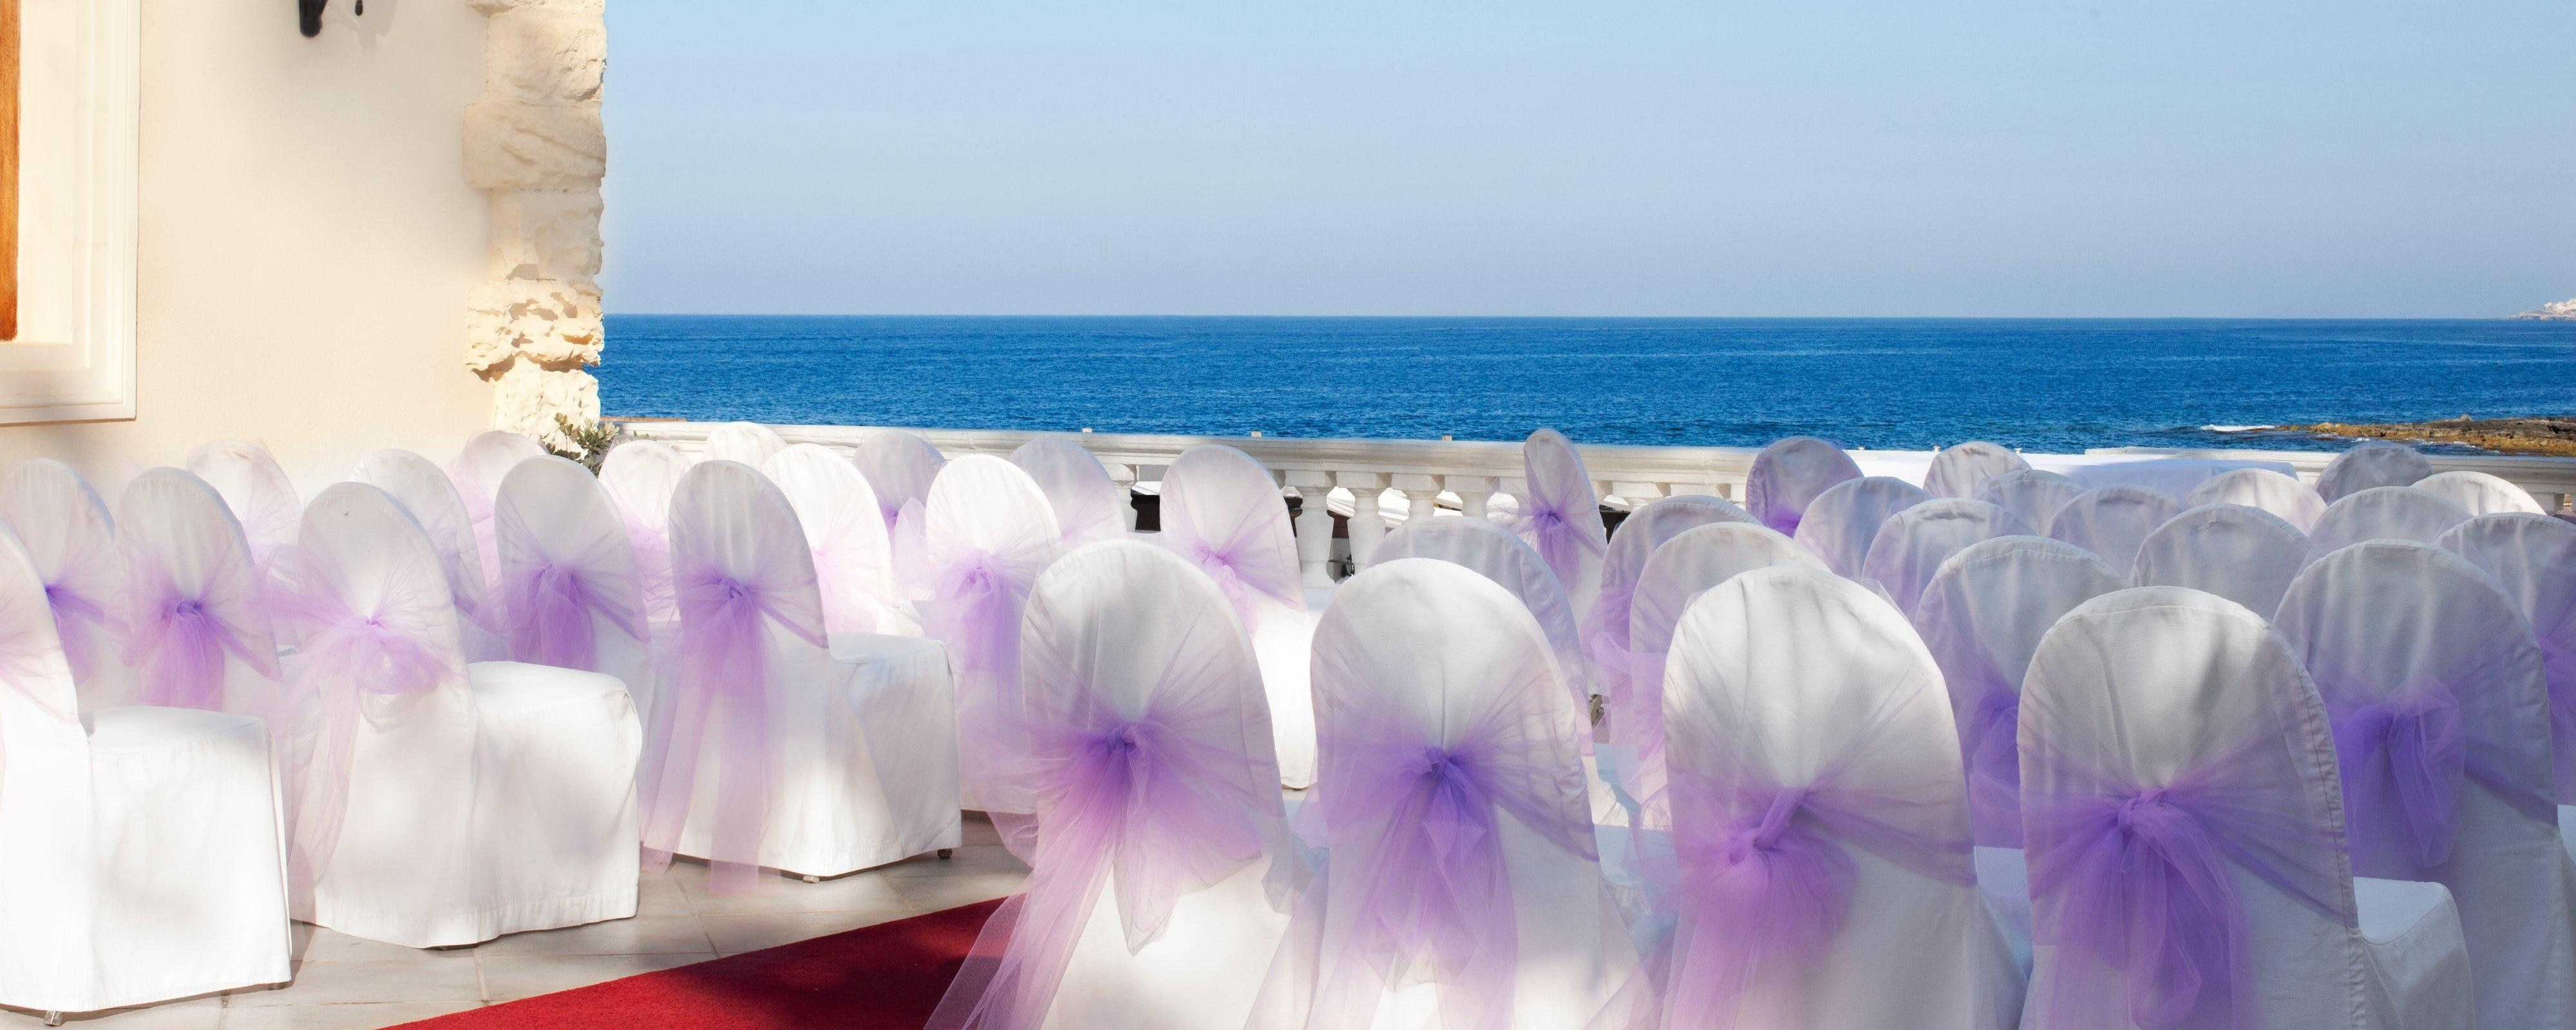 Quadro Terrace - Wedding Ceremony